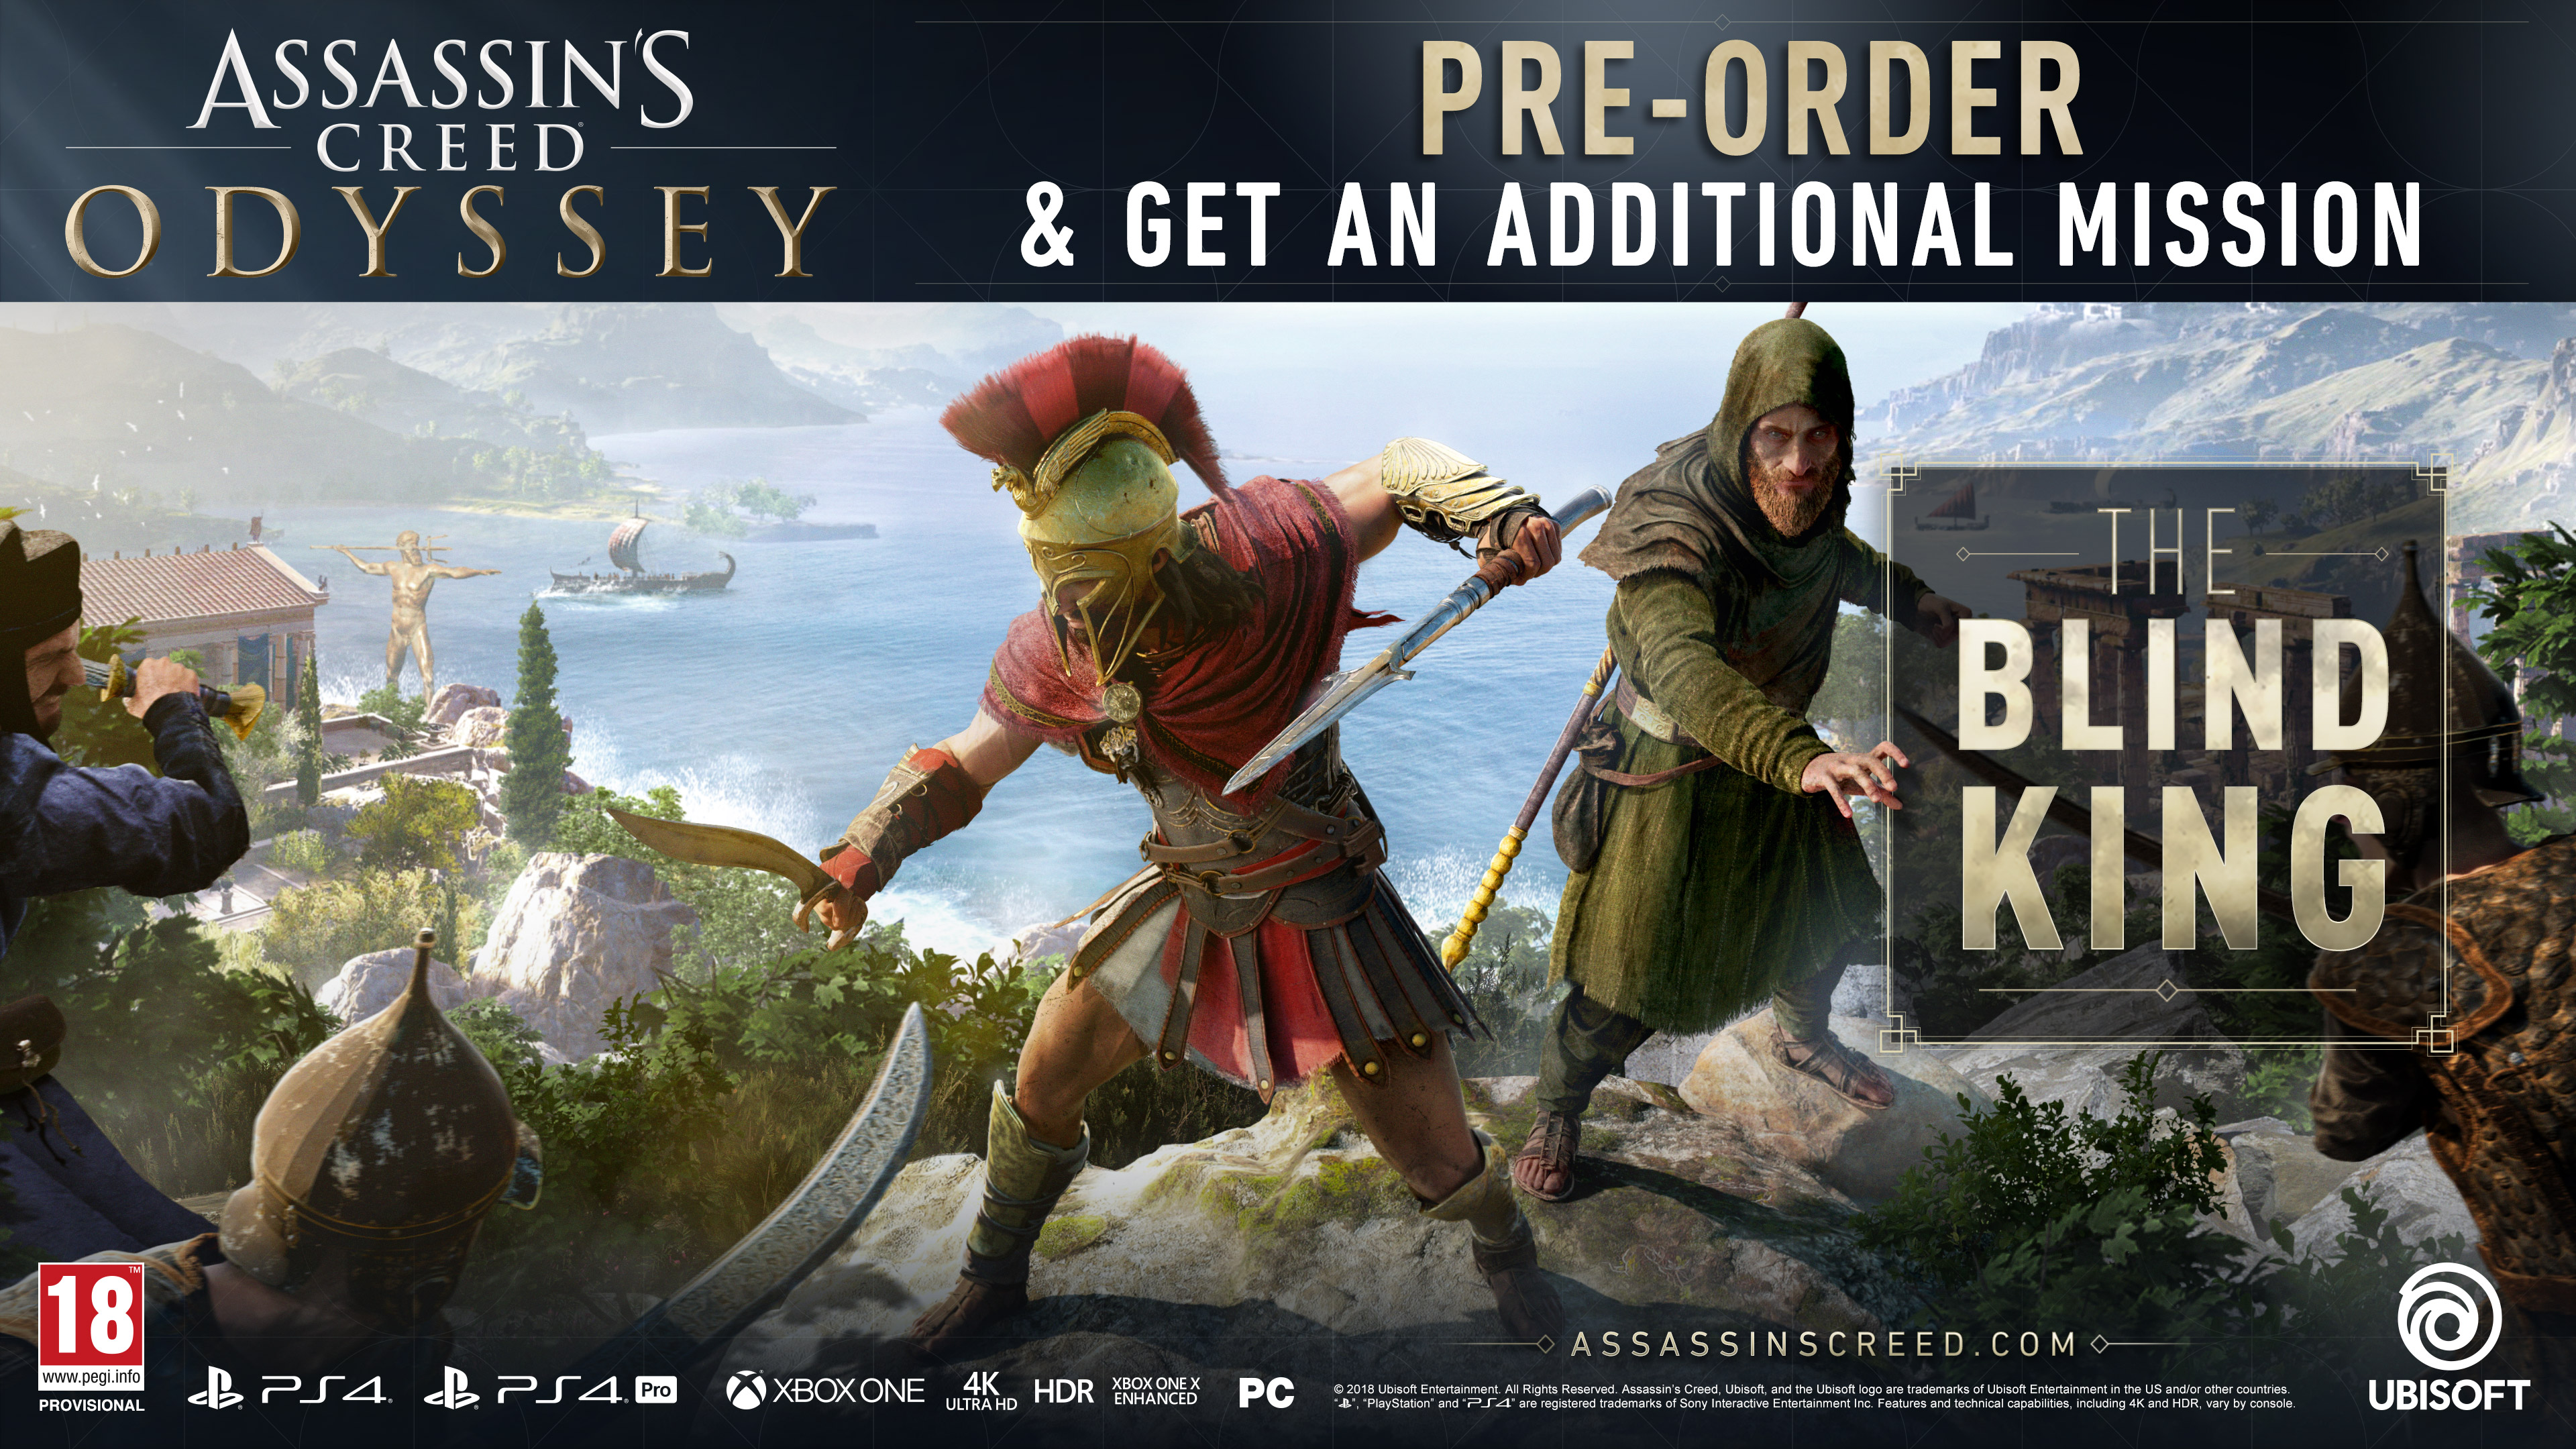 Redeeming an Assassin's Creed: Odyssey Preorder Code